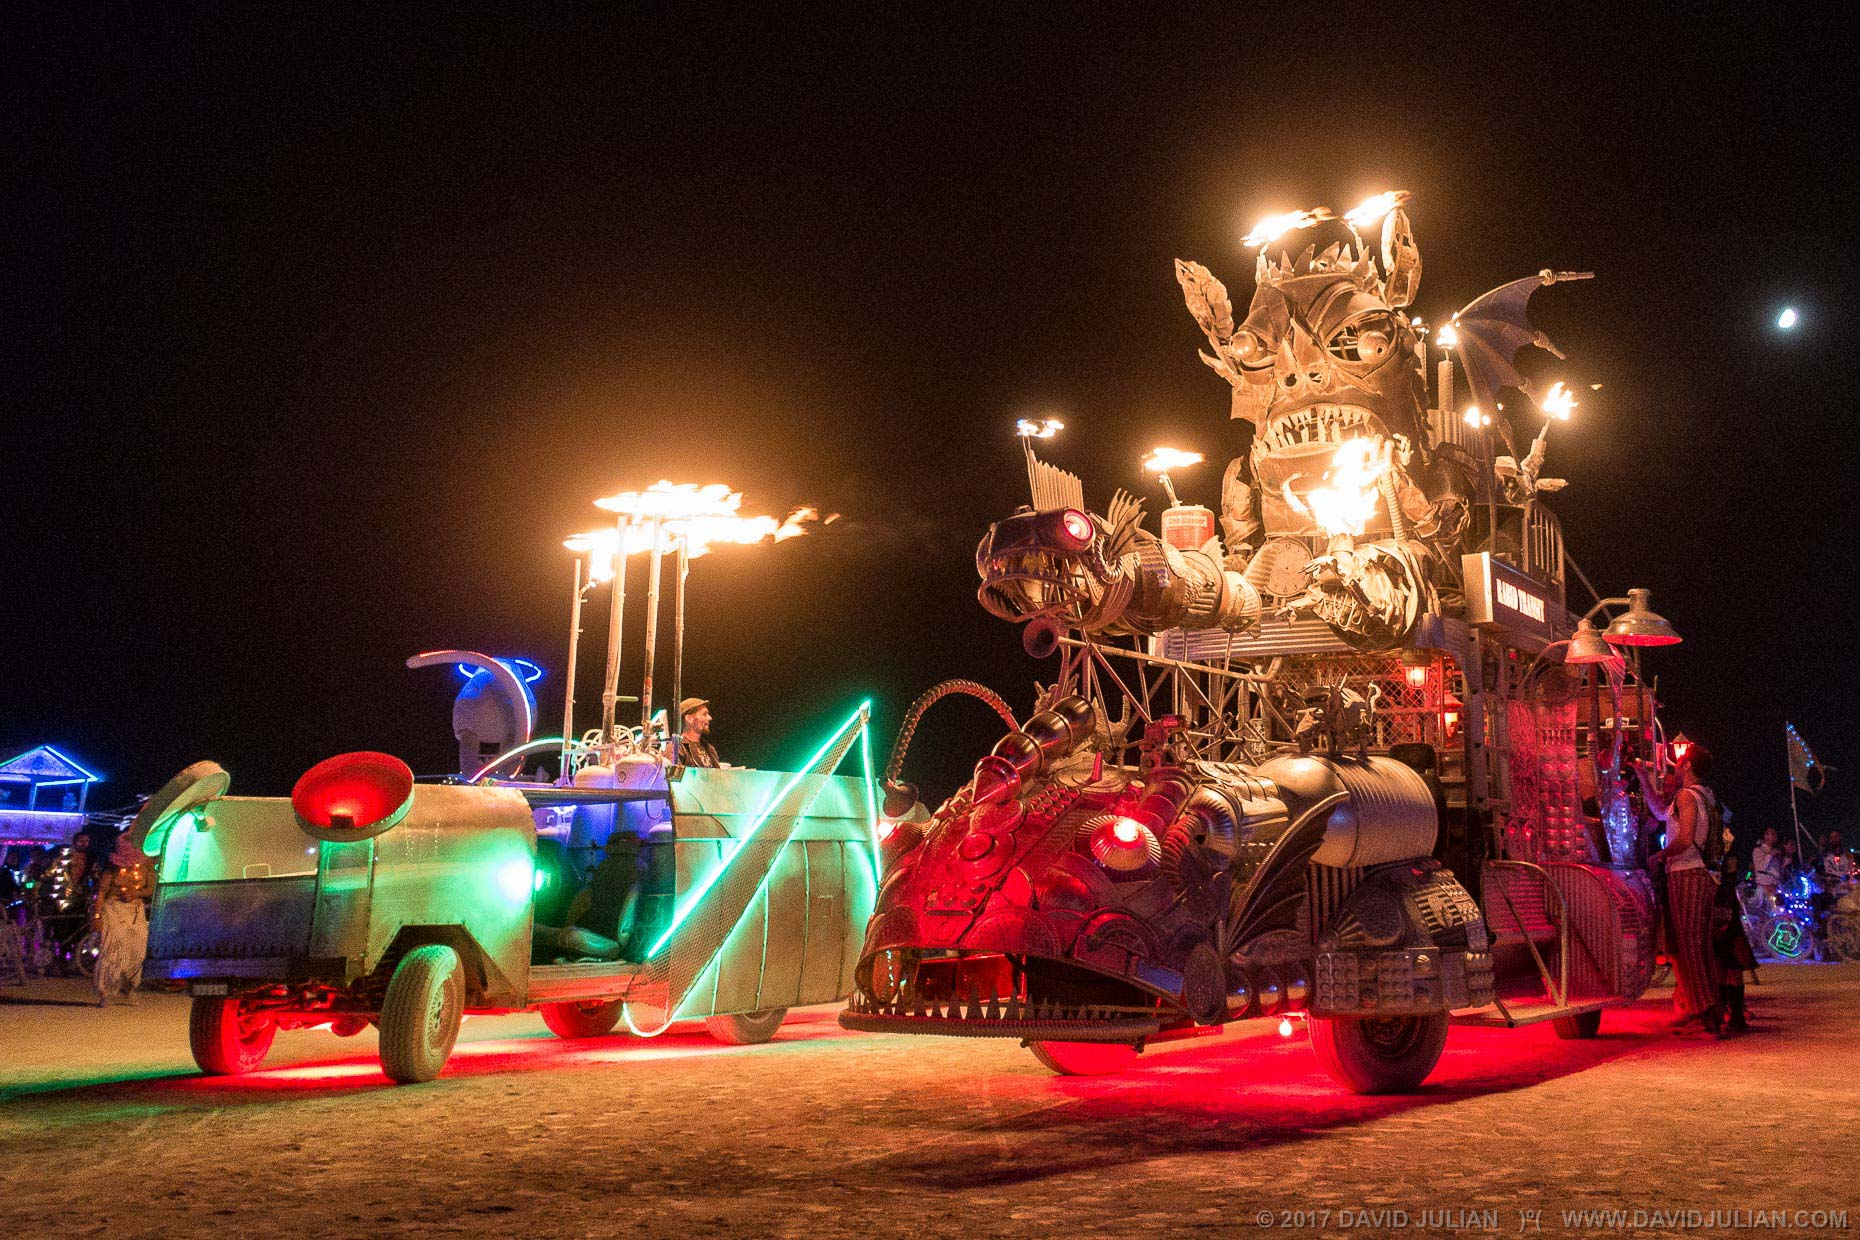 BurningMan2017-RabidTransitGrasshopper-3155-APF1860px-APF1860px